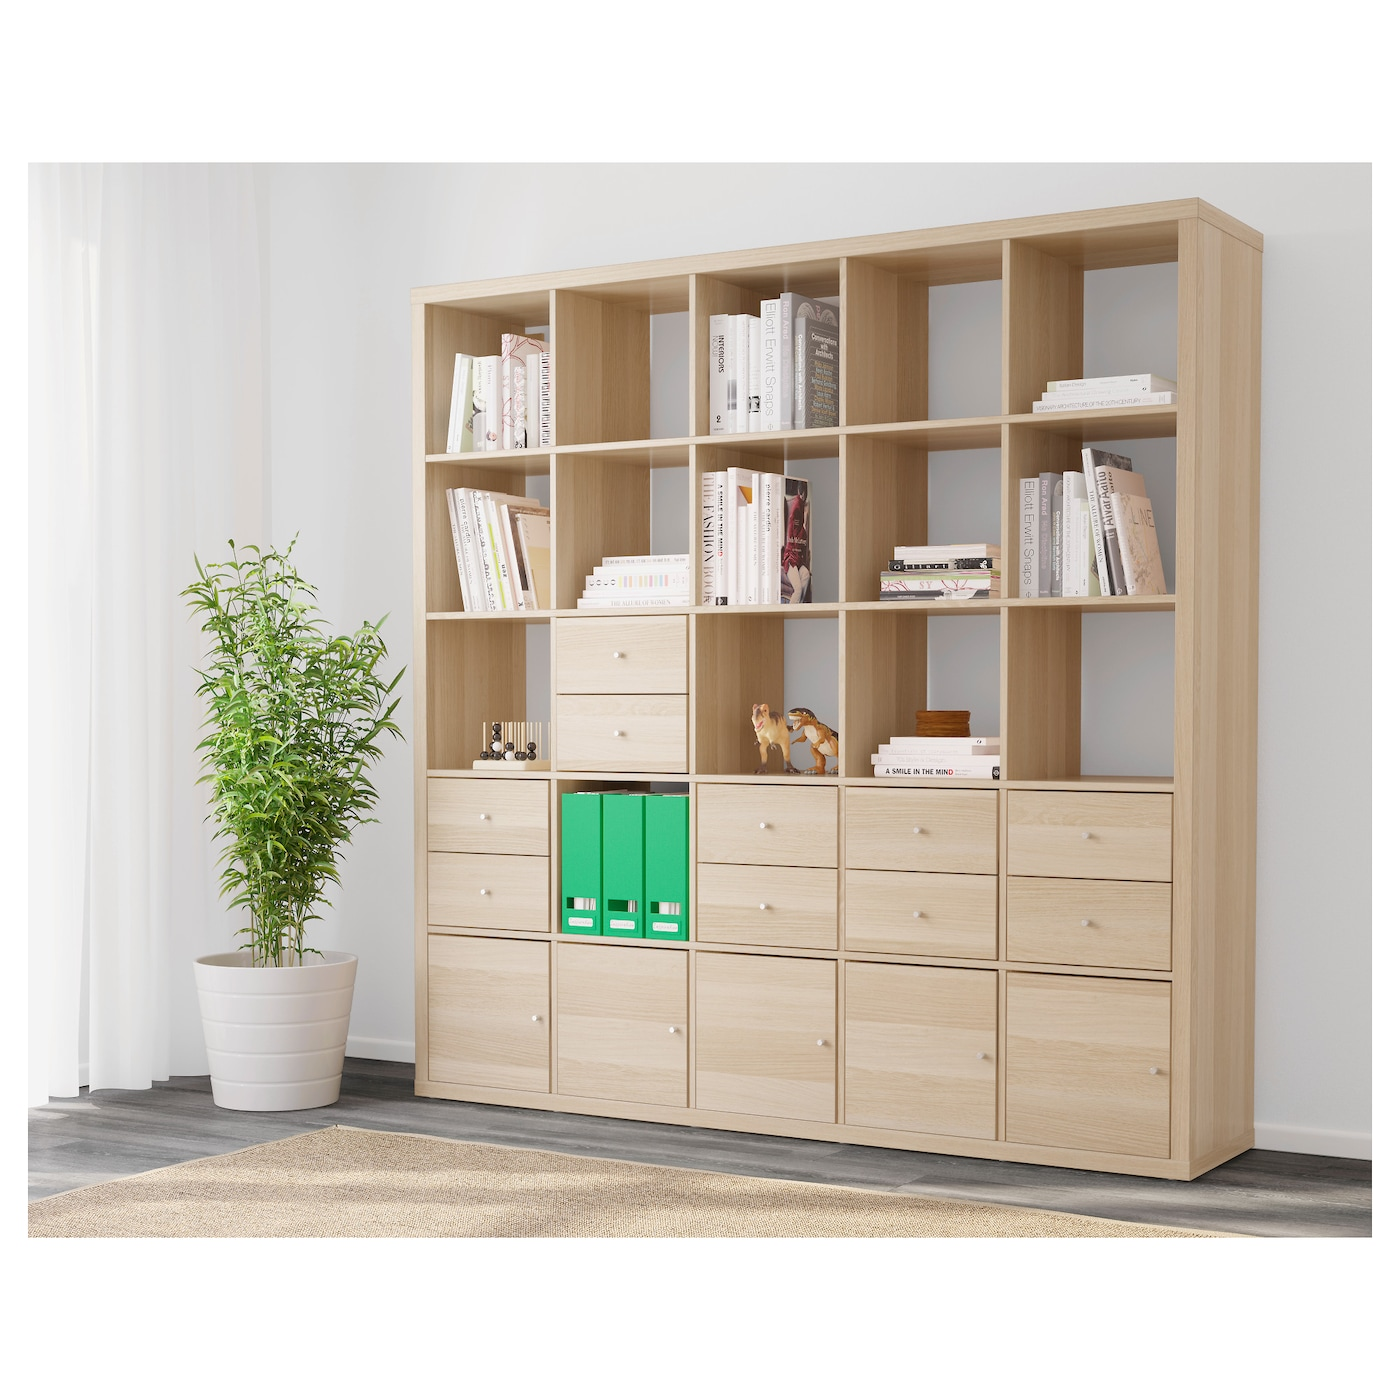 Kallax shelving unit with 10 inserts white stained oak effect 182 x 182 cm ikea - Kallax ideen wohnzimmer ...